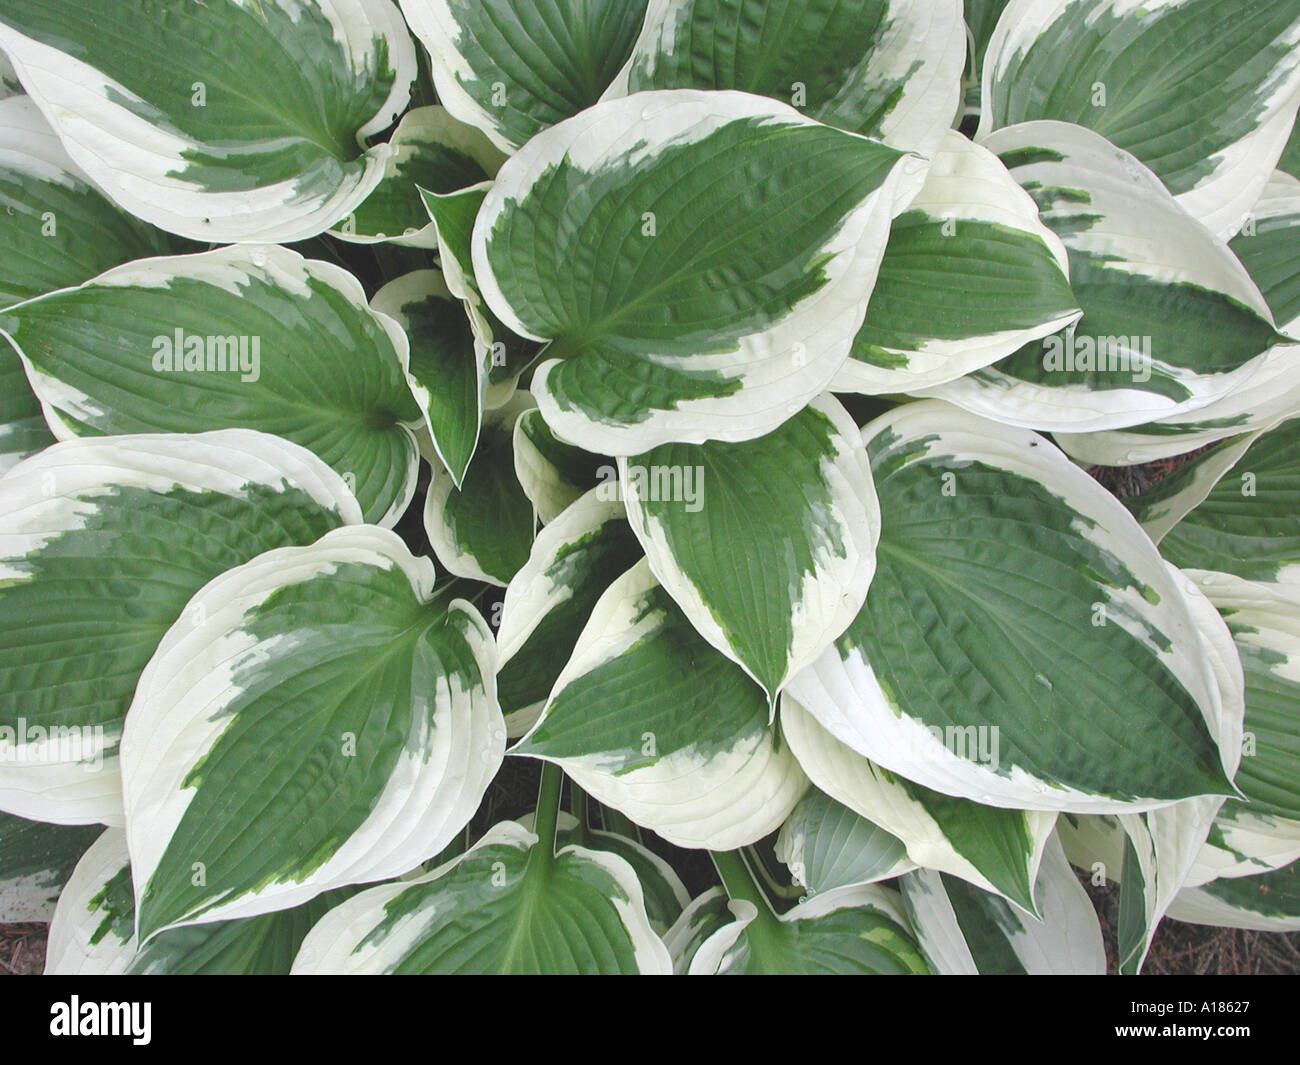 White And Green Hosta Plant Stock Photo 99879 Alamy